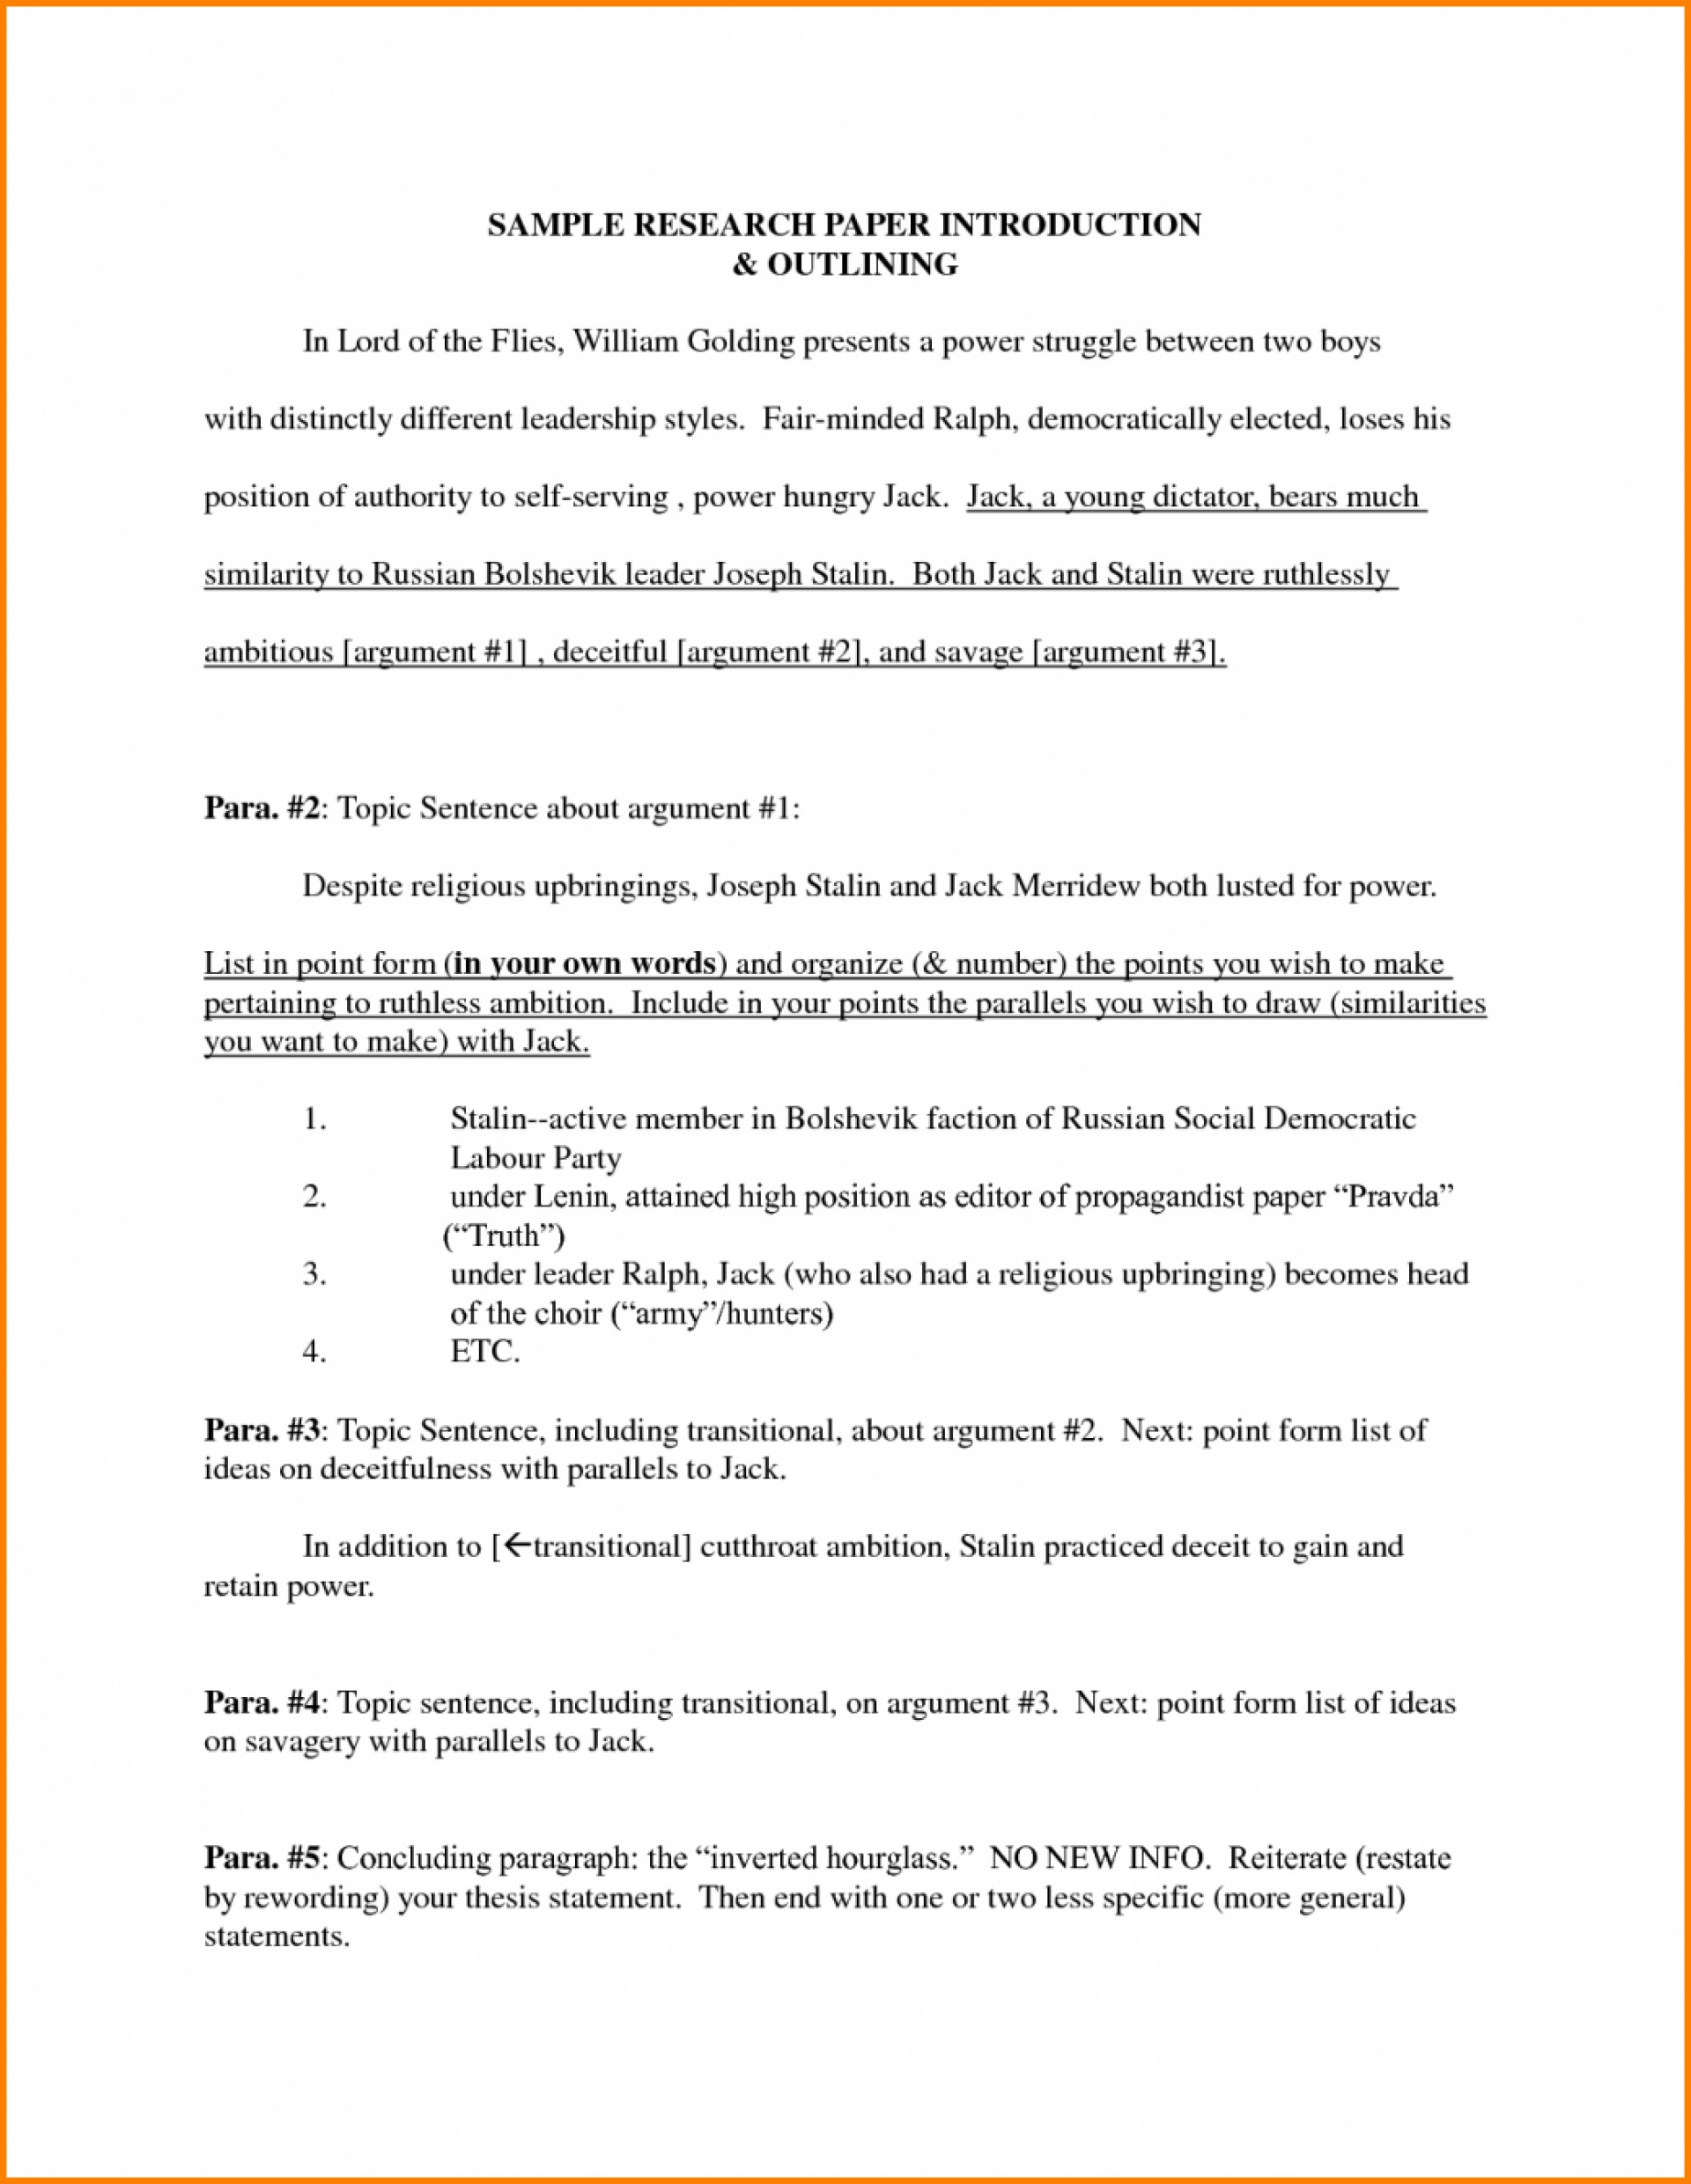 003 Good Introductions For Research Papers Examples Pdf Of Essays Essay Template Introduction Paper Example Best